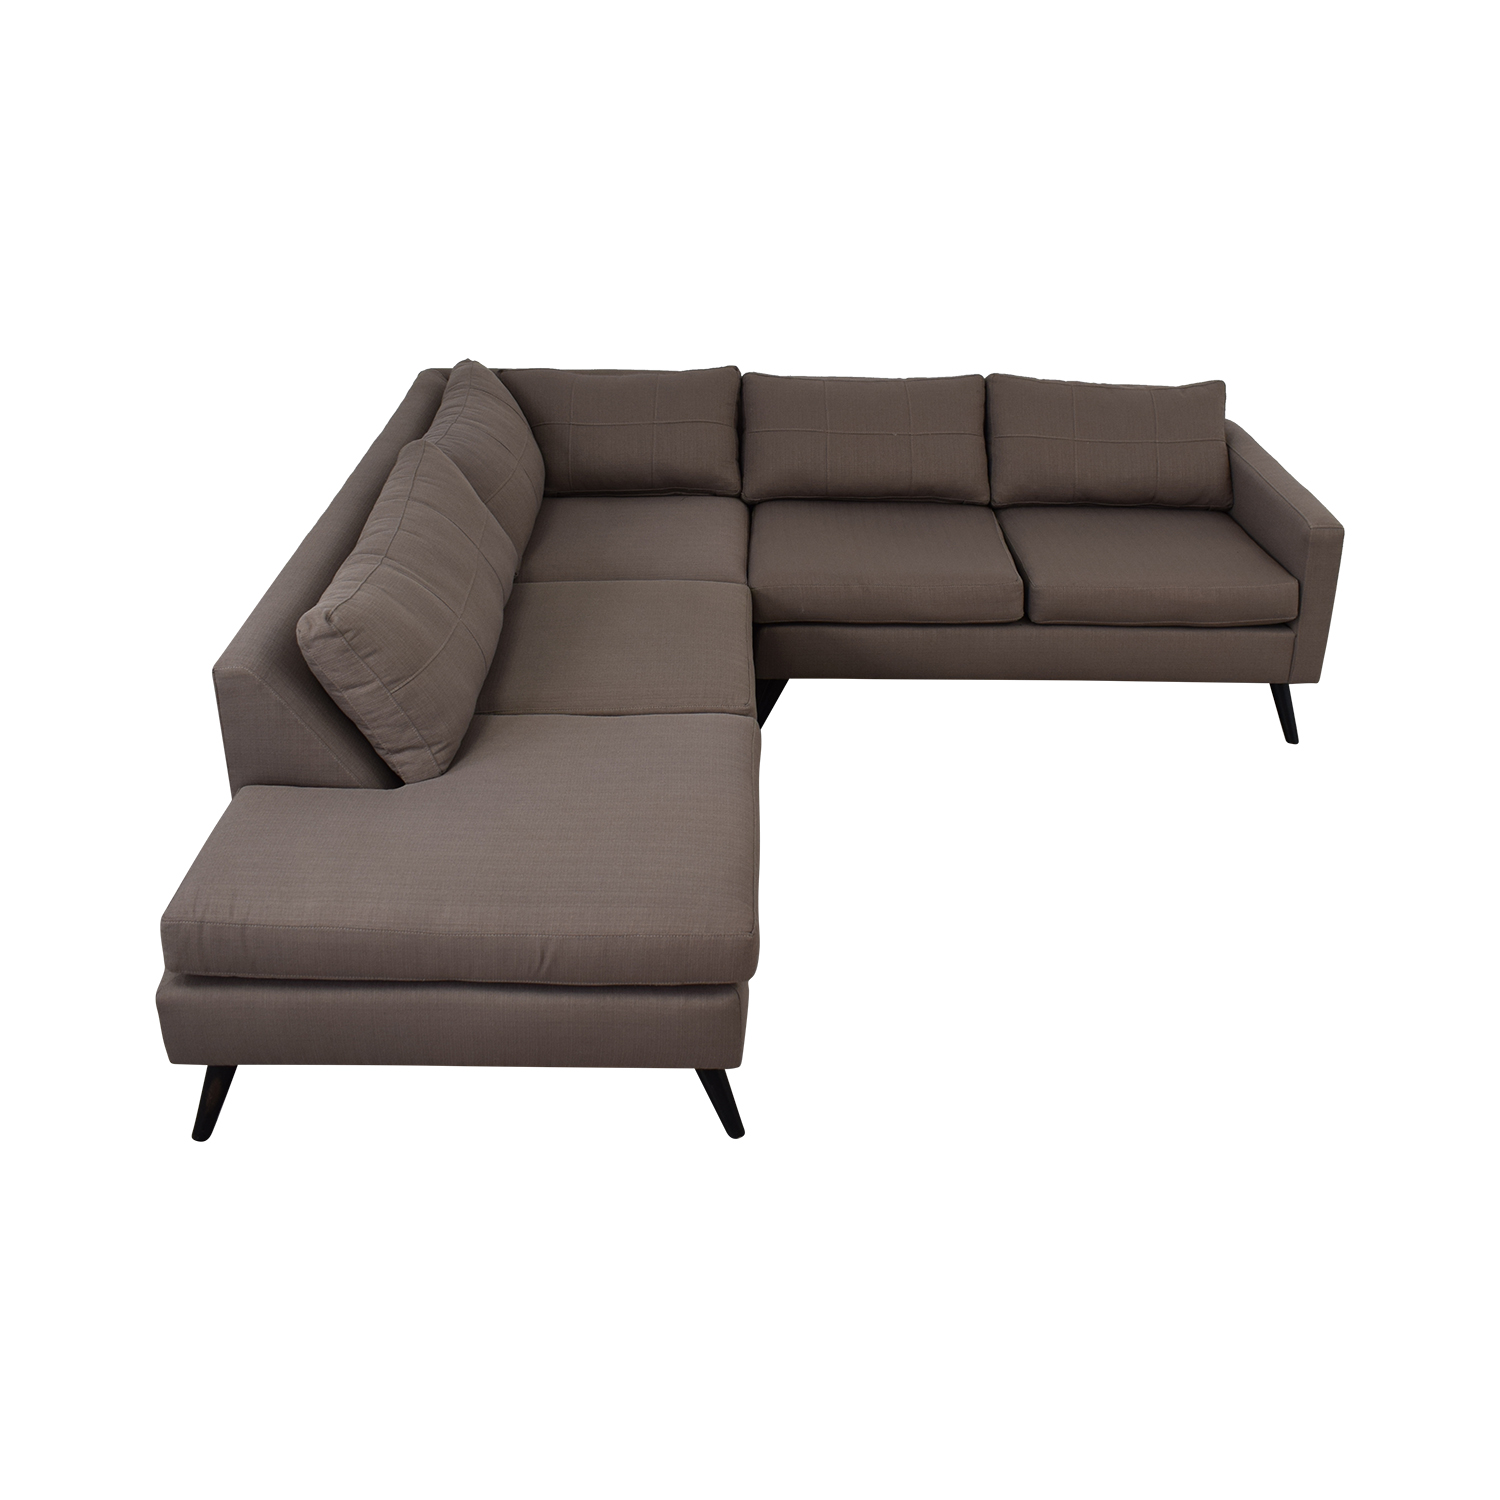 TrueModern TrueModern Dane Grey L-Shaped Sectional price